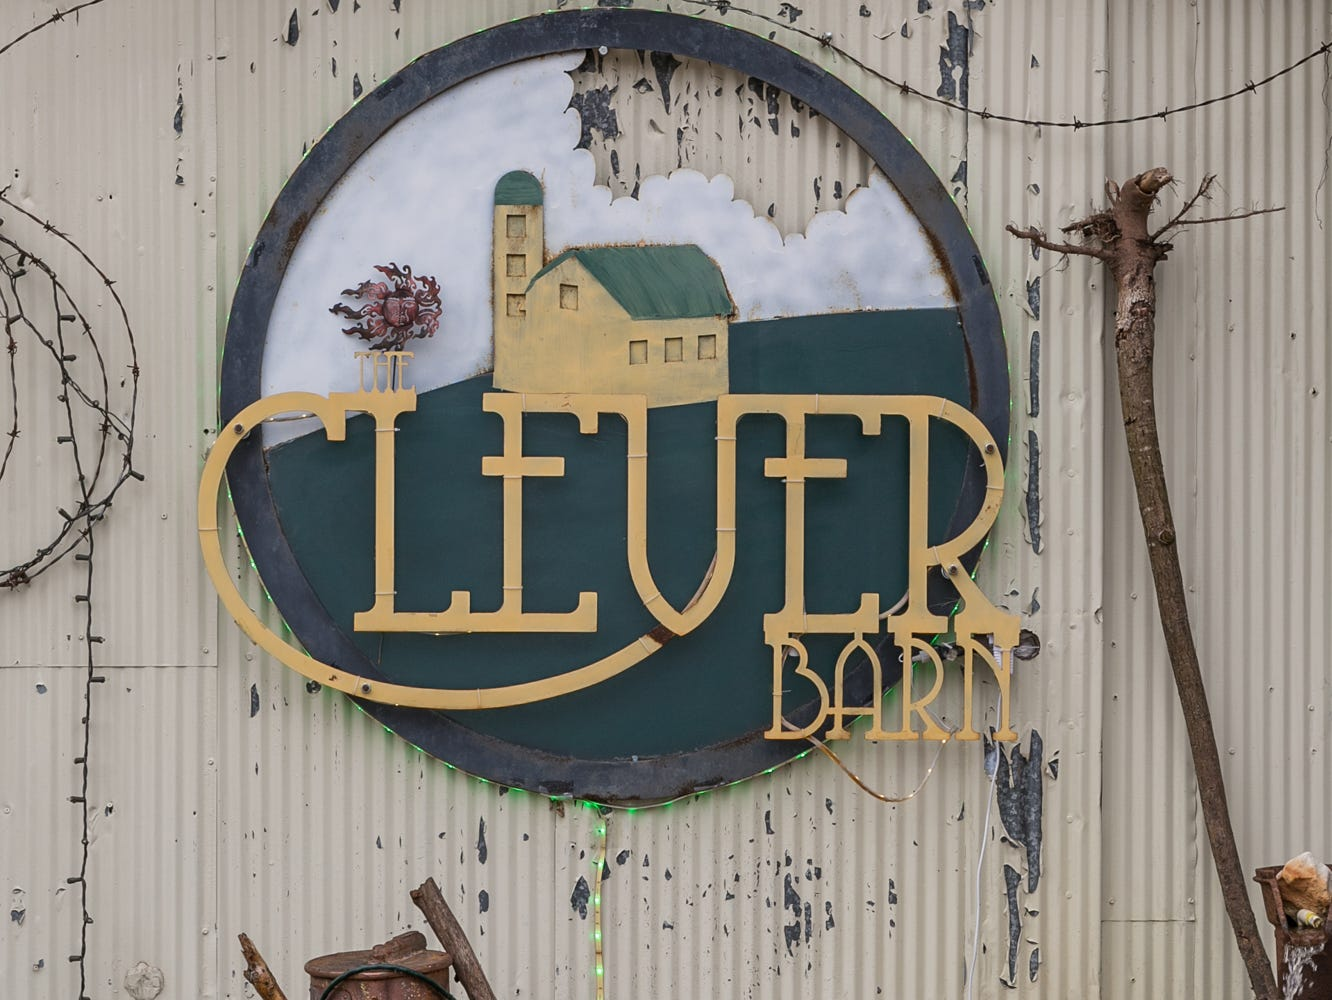 The Clever Barn, about a 30-minute drive from central Springfield, is the creation of Laura and Randy Walden.